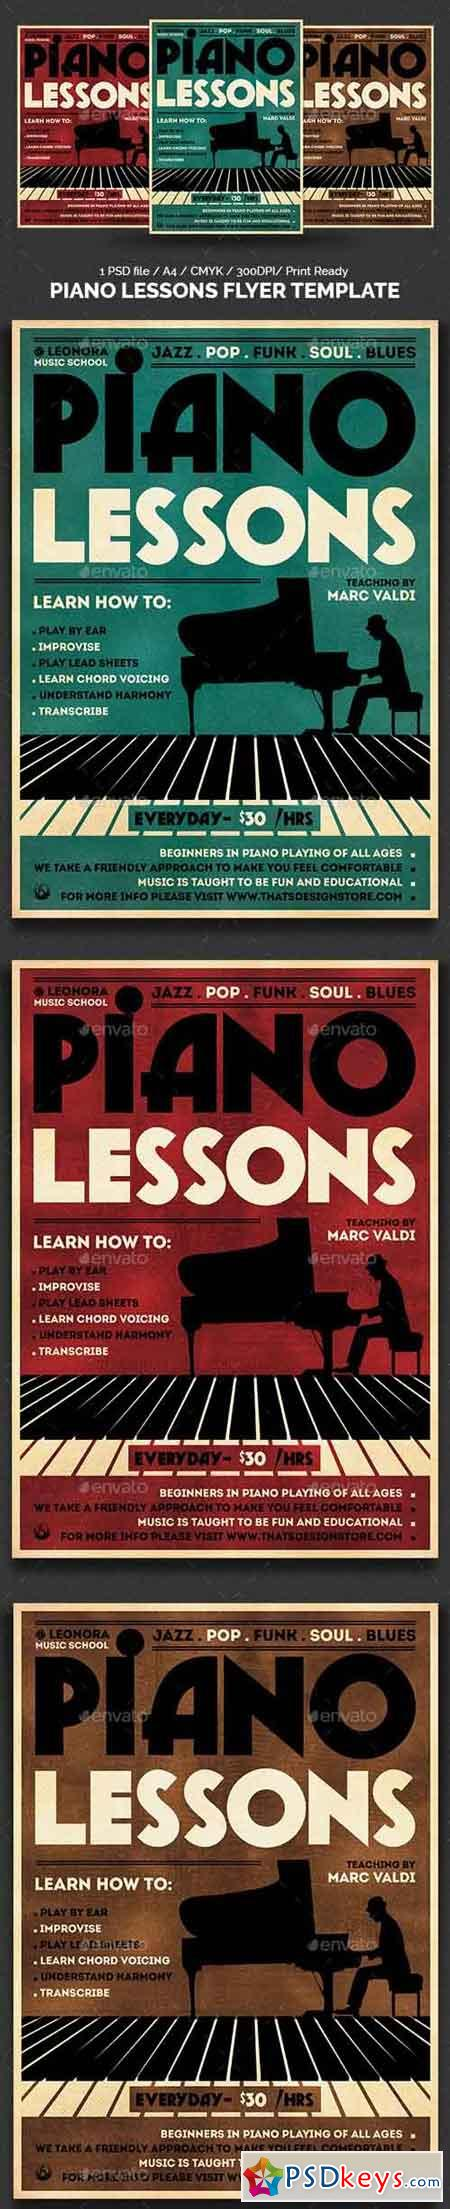 Piano Lessons Flyer Template 13922819